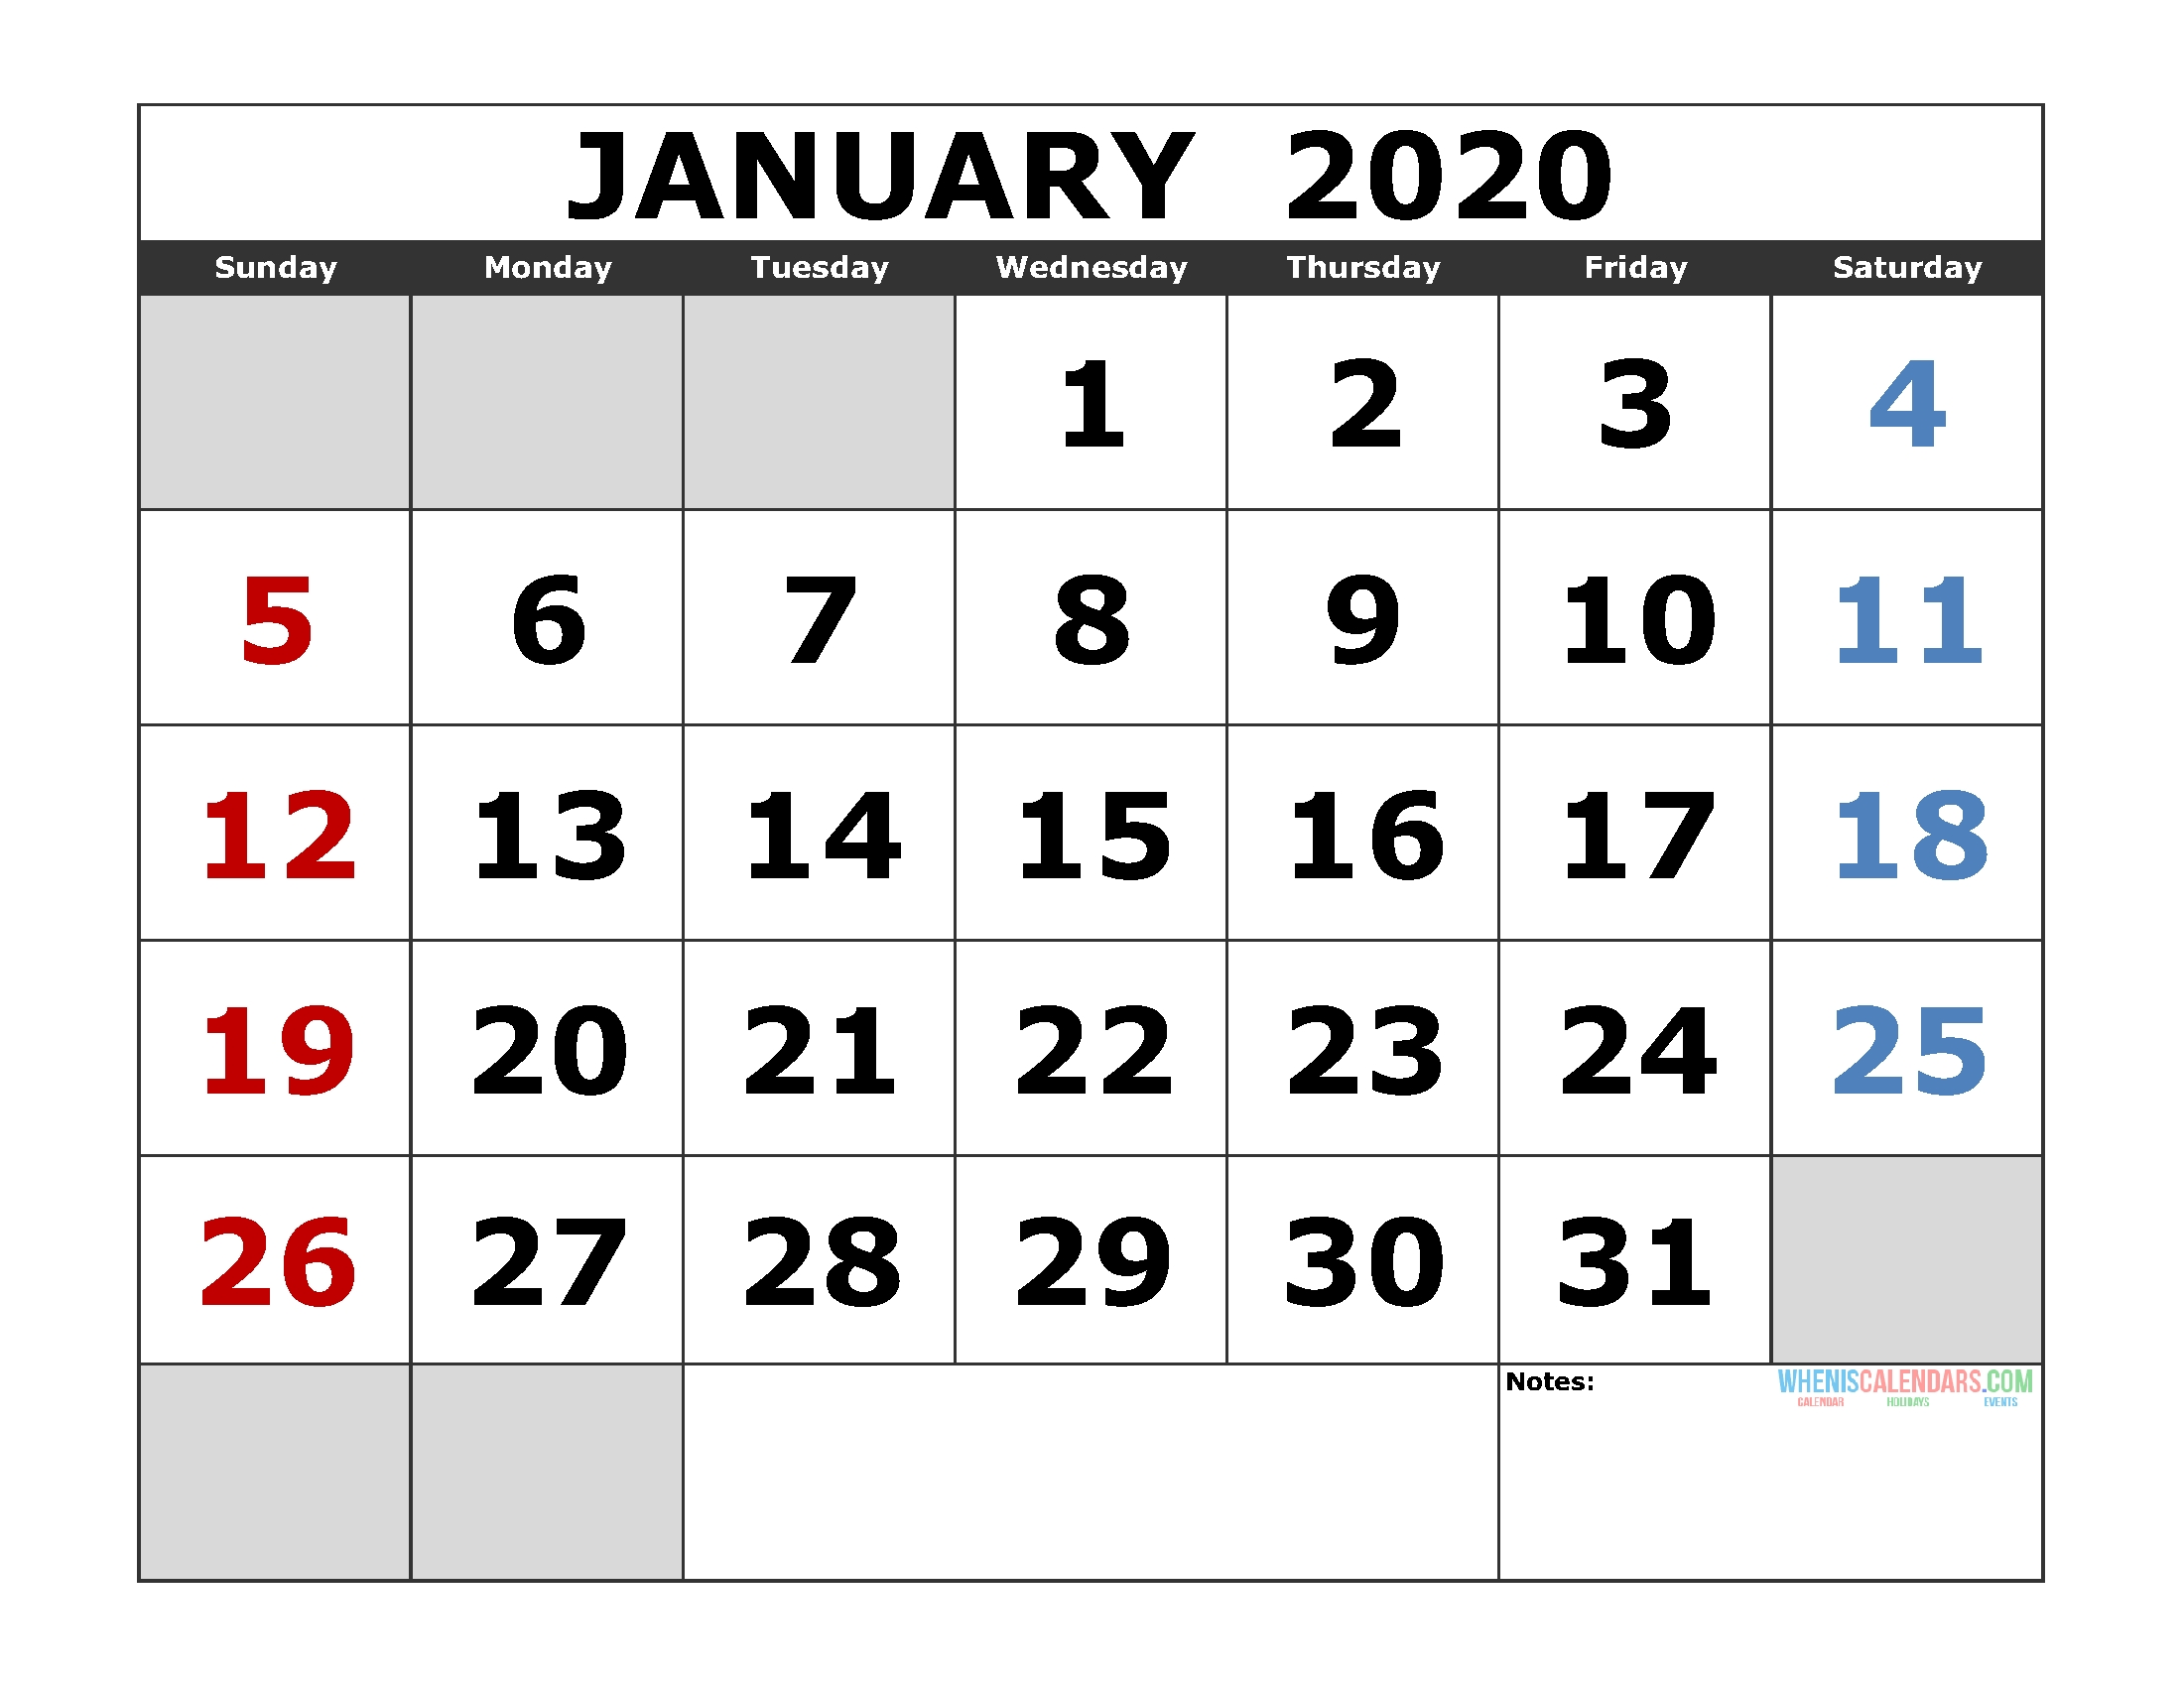 January 2020 Printable Calendar Template Excel, Pdf, Image-January 2020 Calendar In Excel